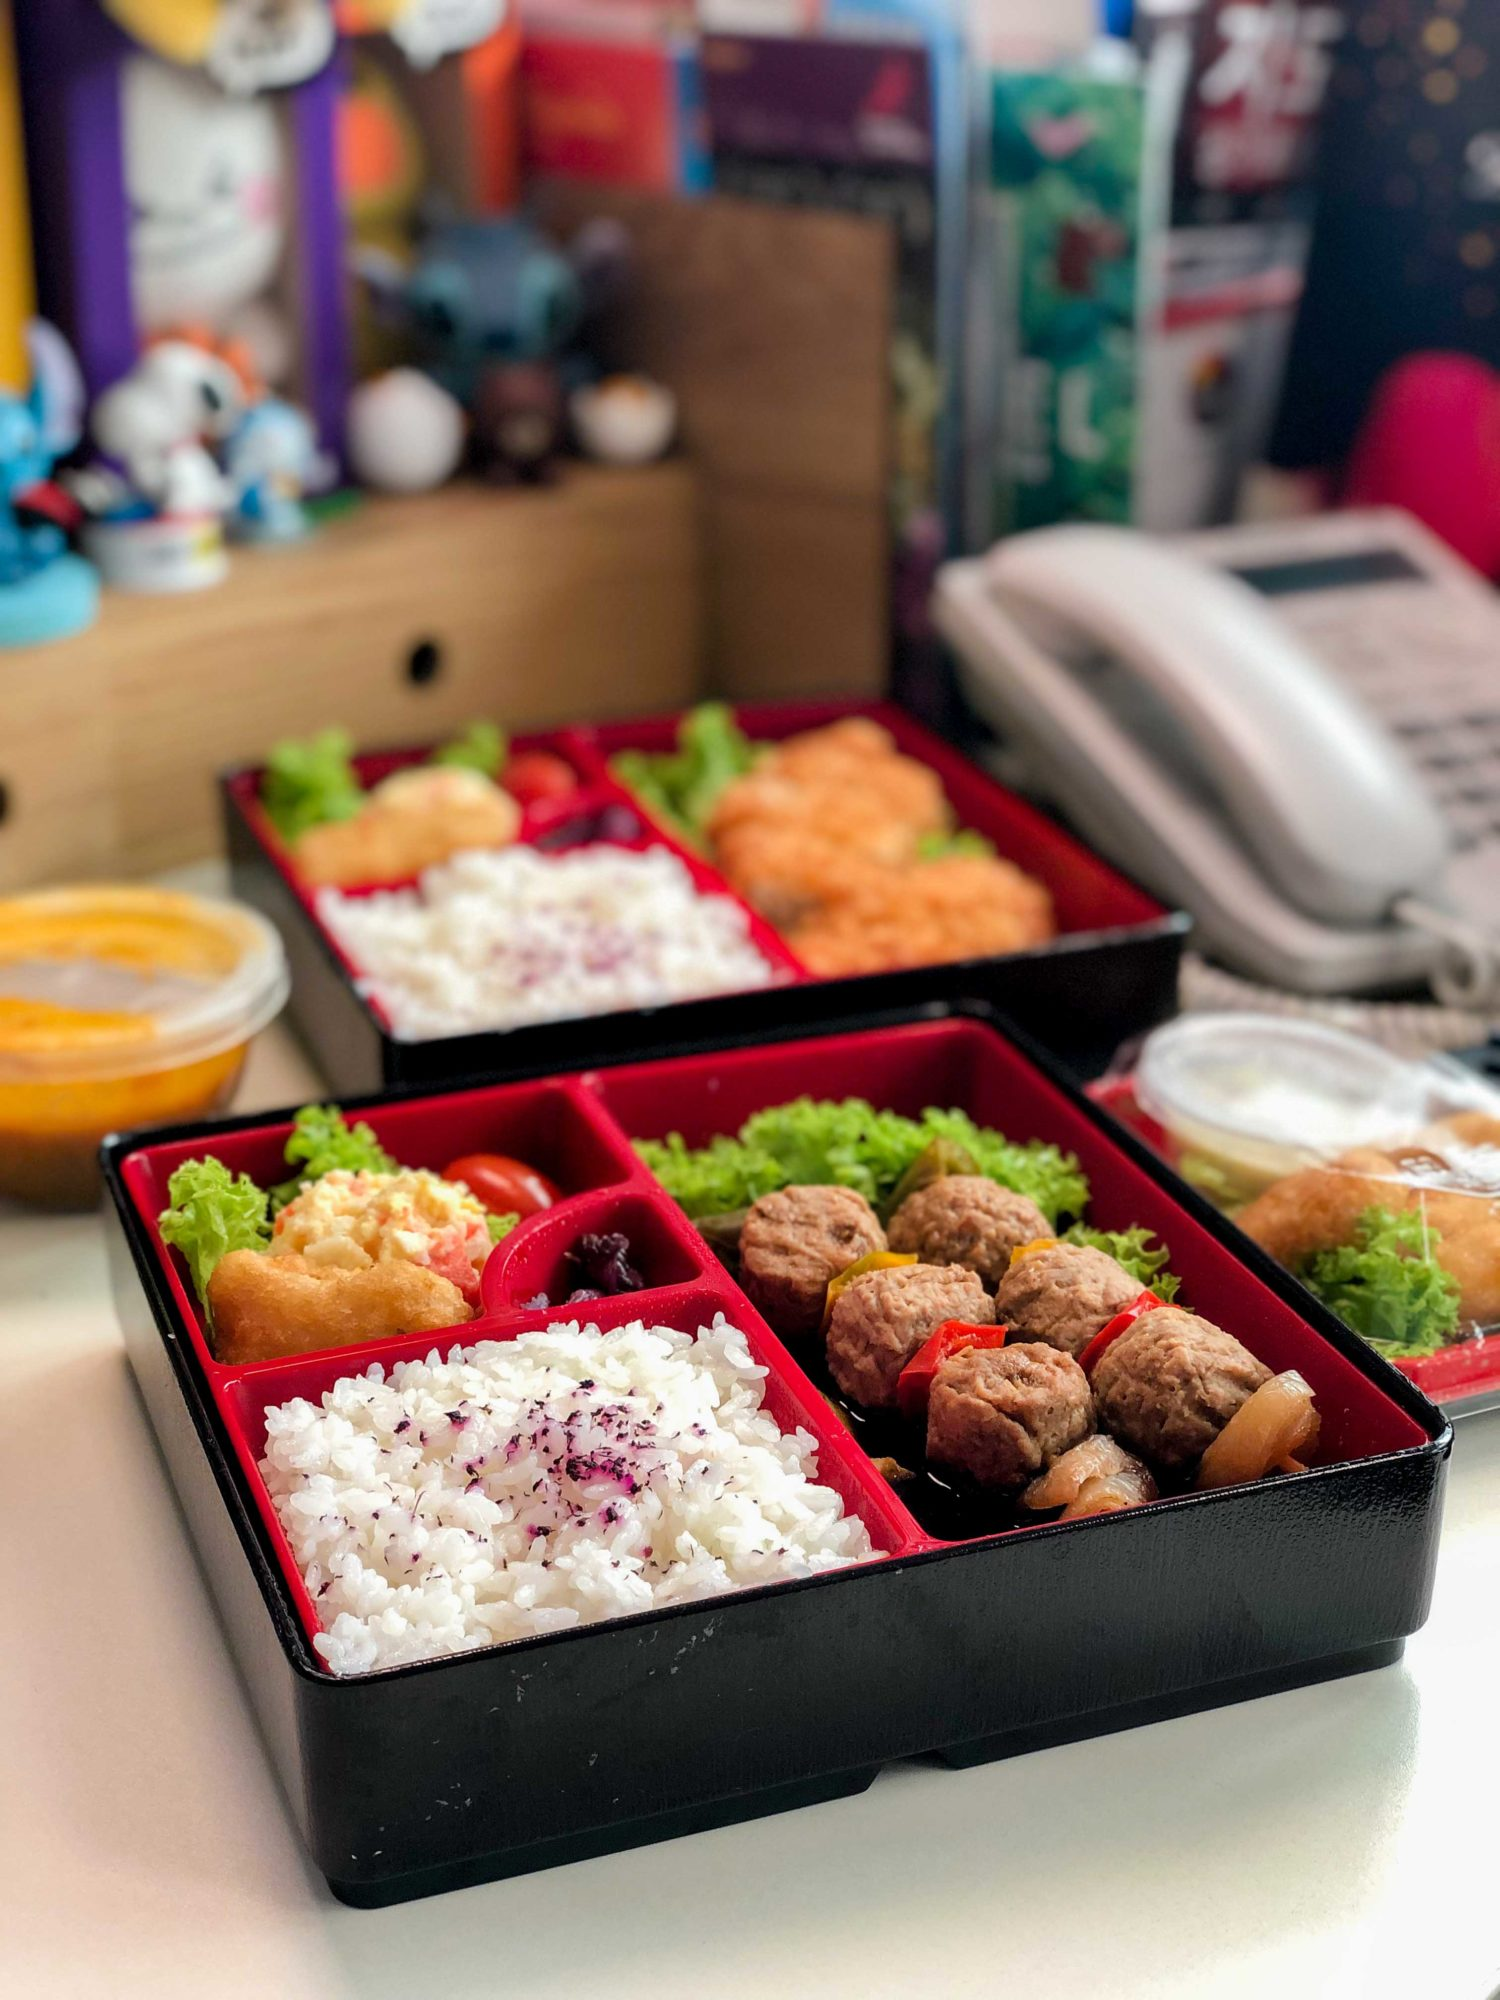 Meat-free Tsukune Bento $13.80 Quorn® meatballs grilled to juicy perfection, served with Ichiban Bento's house special yakitori sauce, Quorn® nugget, potato salad & rice.